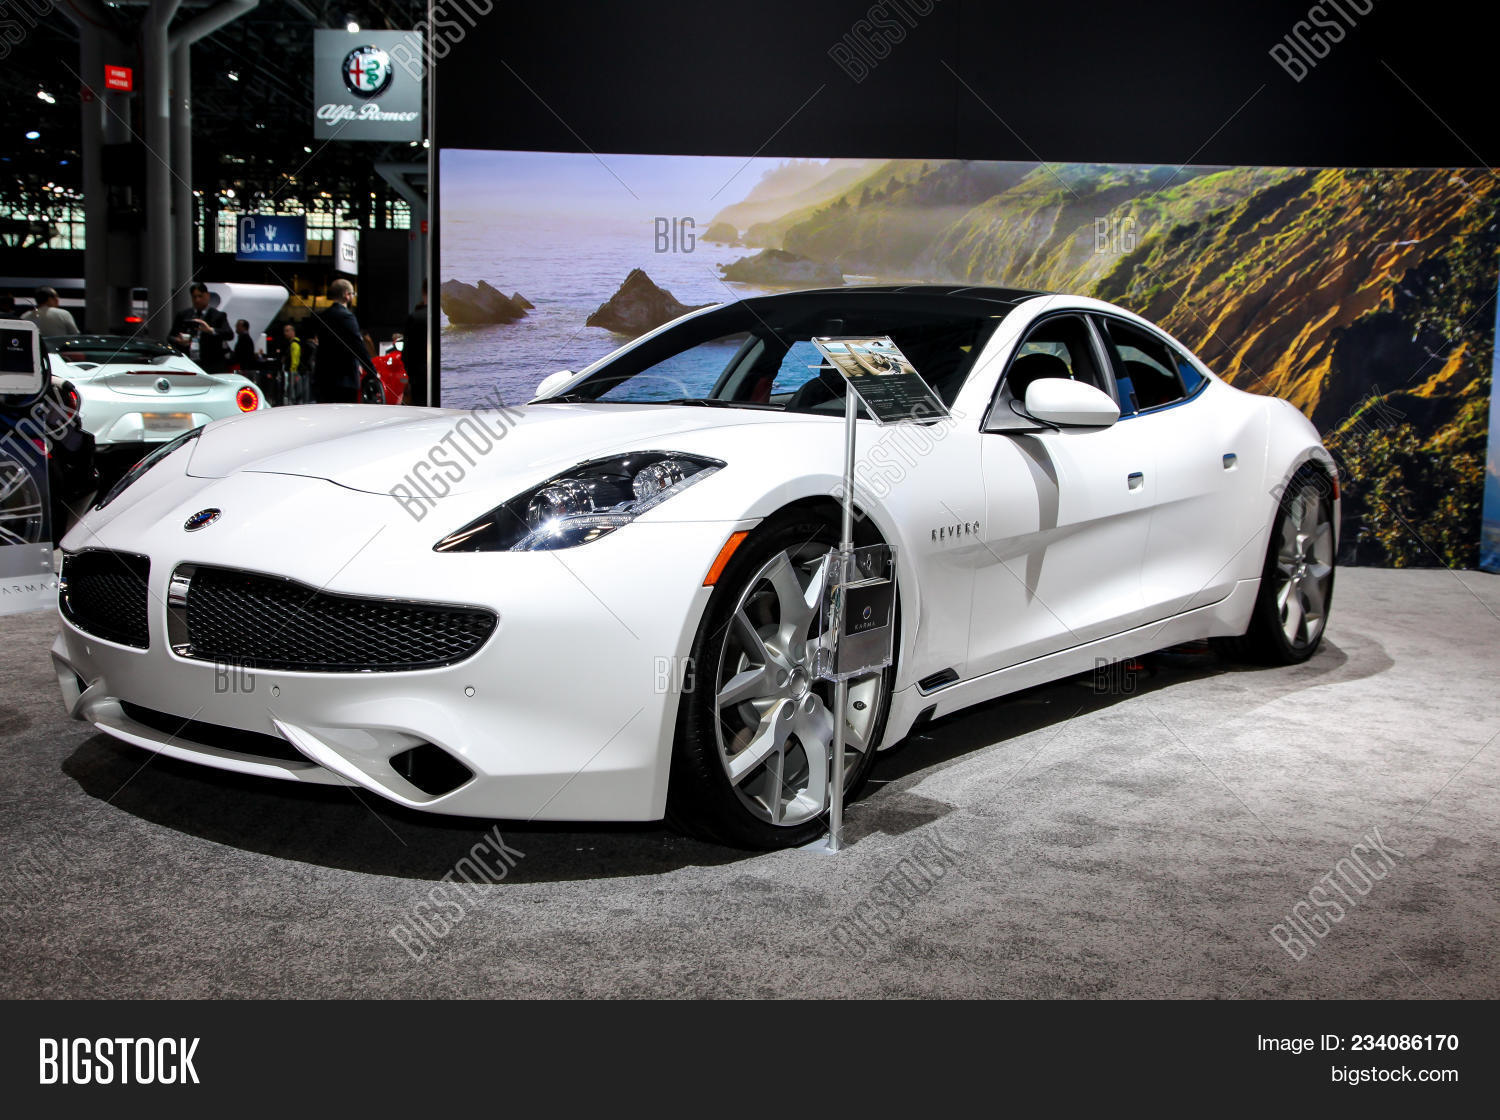 NEW YORK CITYMARCH Image Photo Free Trial Bigstock - Jacob javits center car show 2018